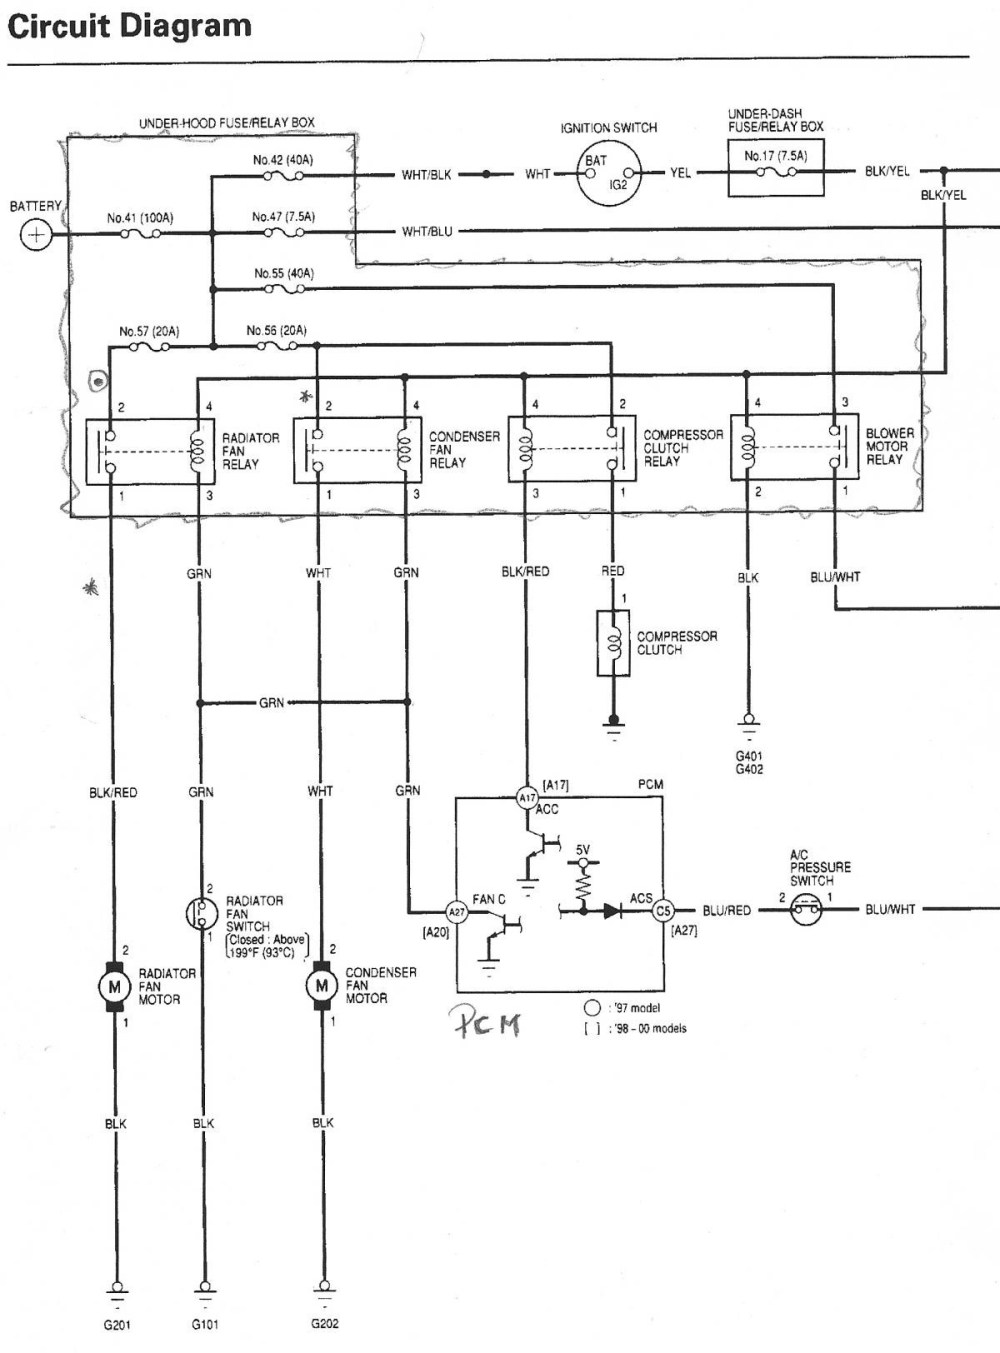 medium resolution of 2004 honda cr v engine wiring diagram wiring library engine cooling system diagram also honda element transmission diagram